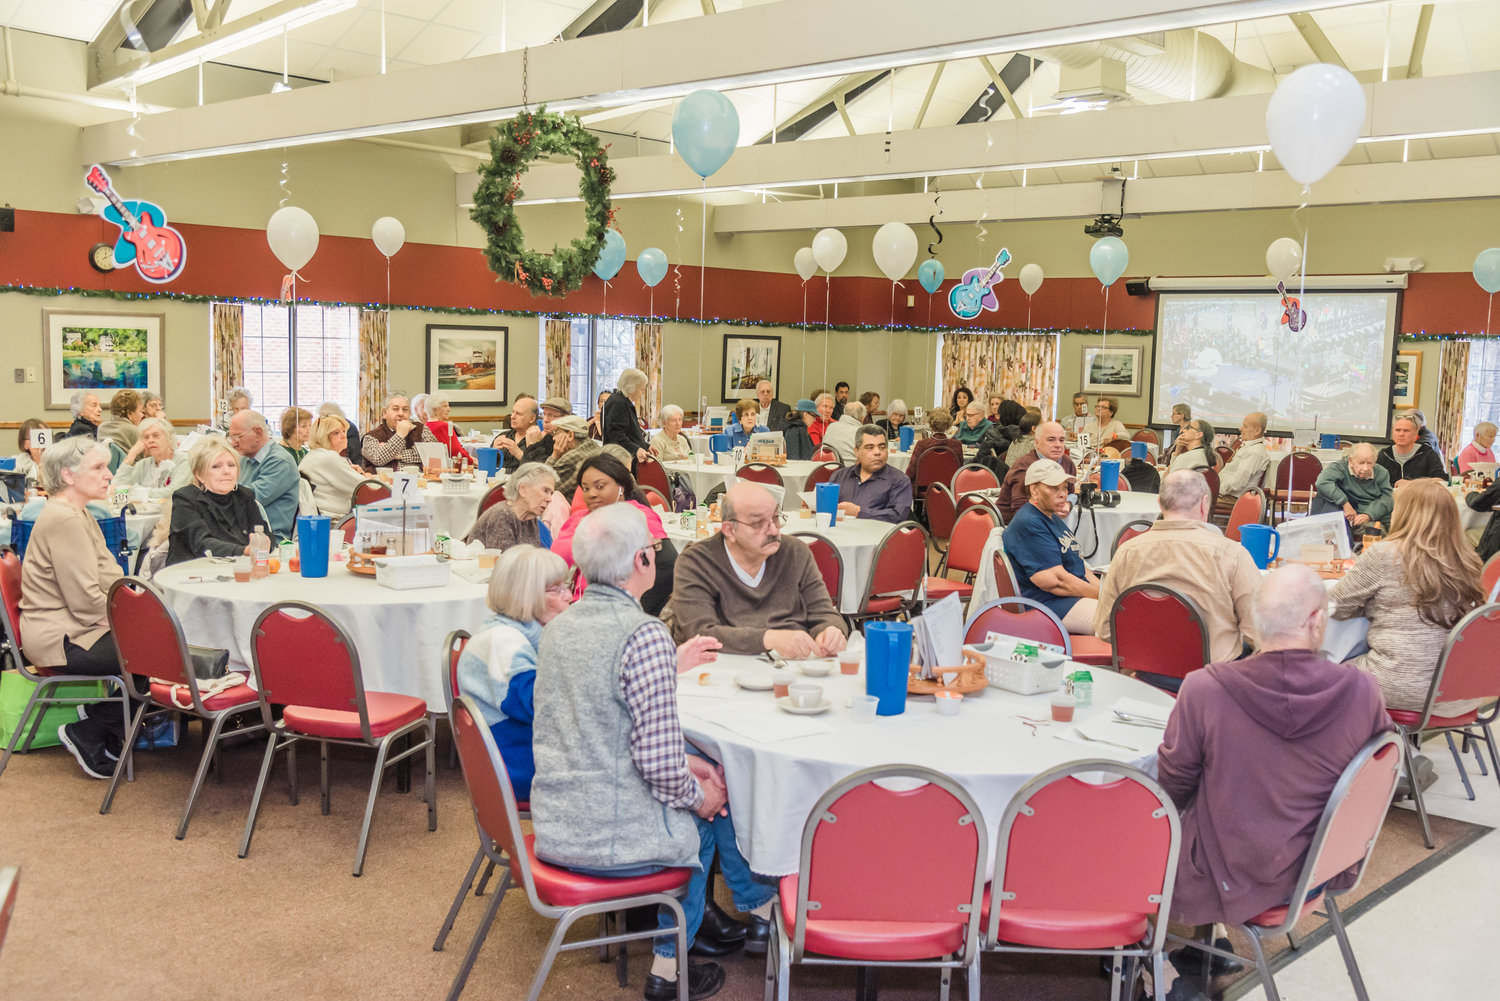 he senior center dining room, right, was packed with excited residents who were eager to ring in the new year with a home cooked meal.